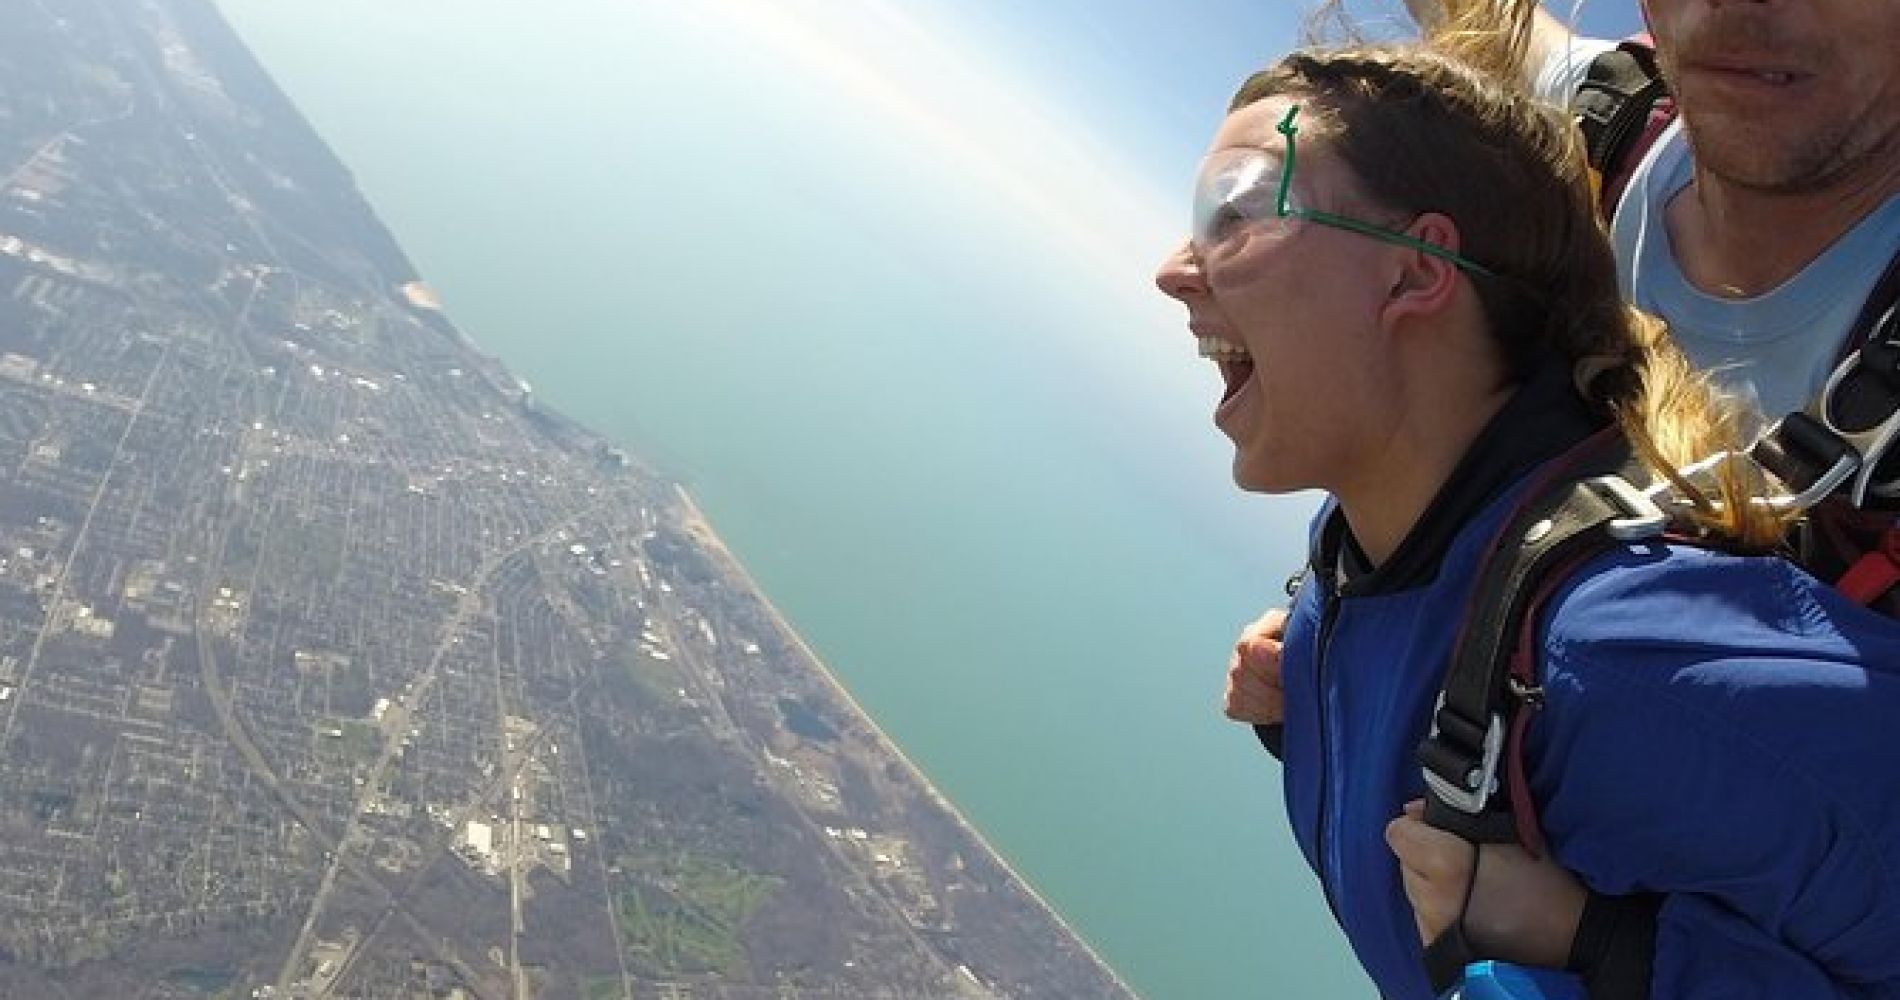 Tandem Skydiving Experience in Chicago